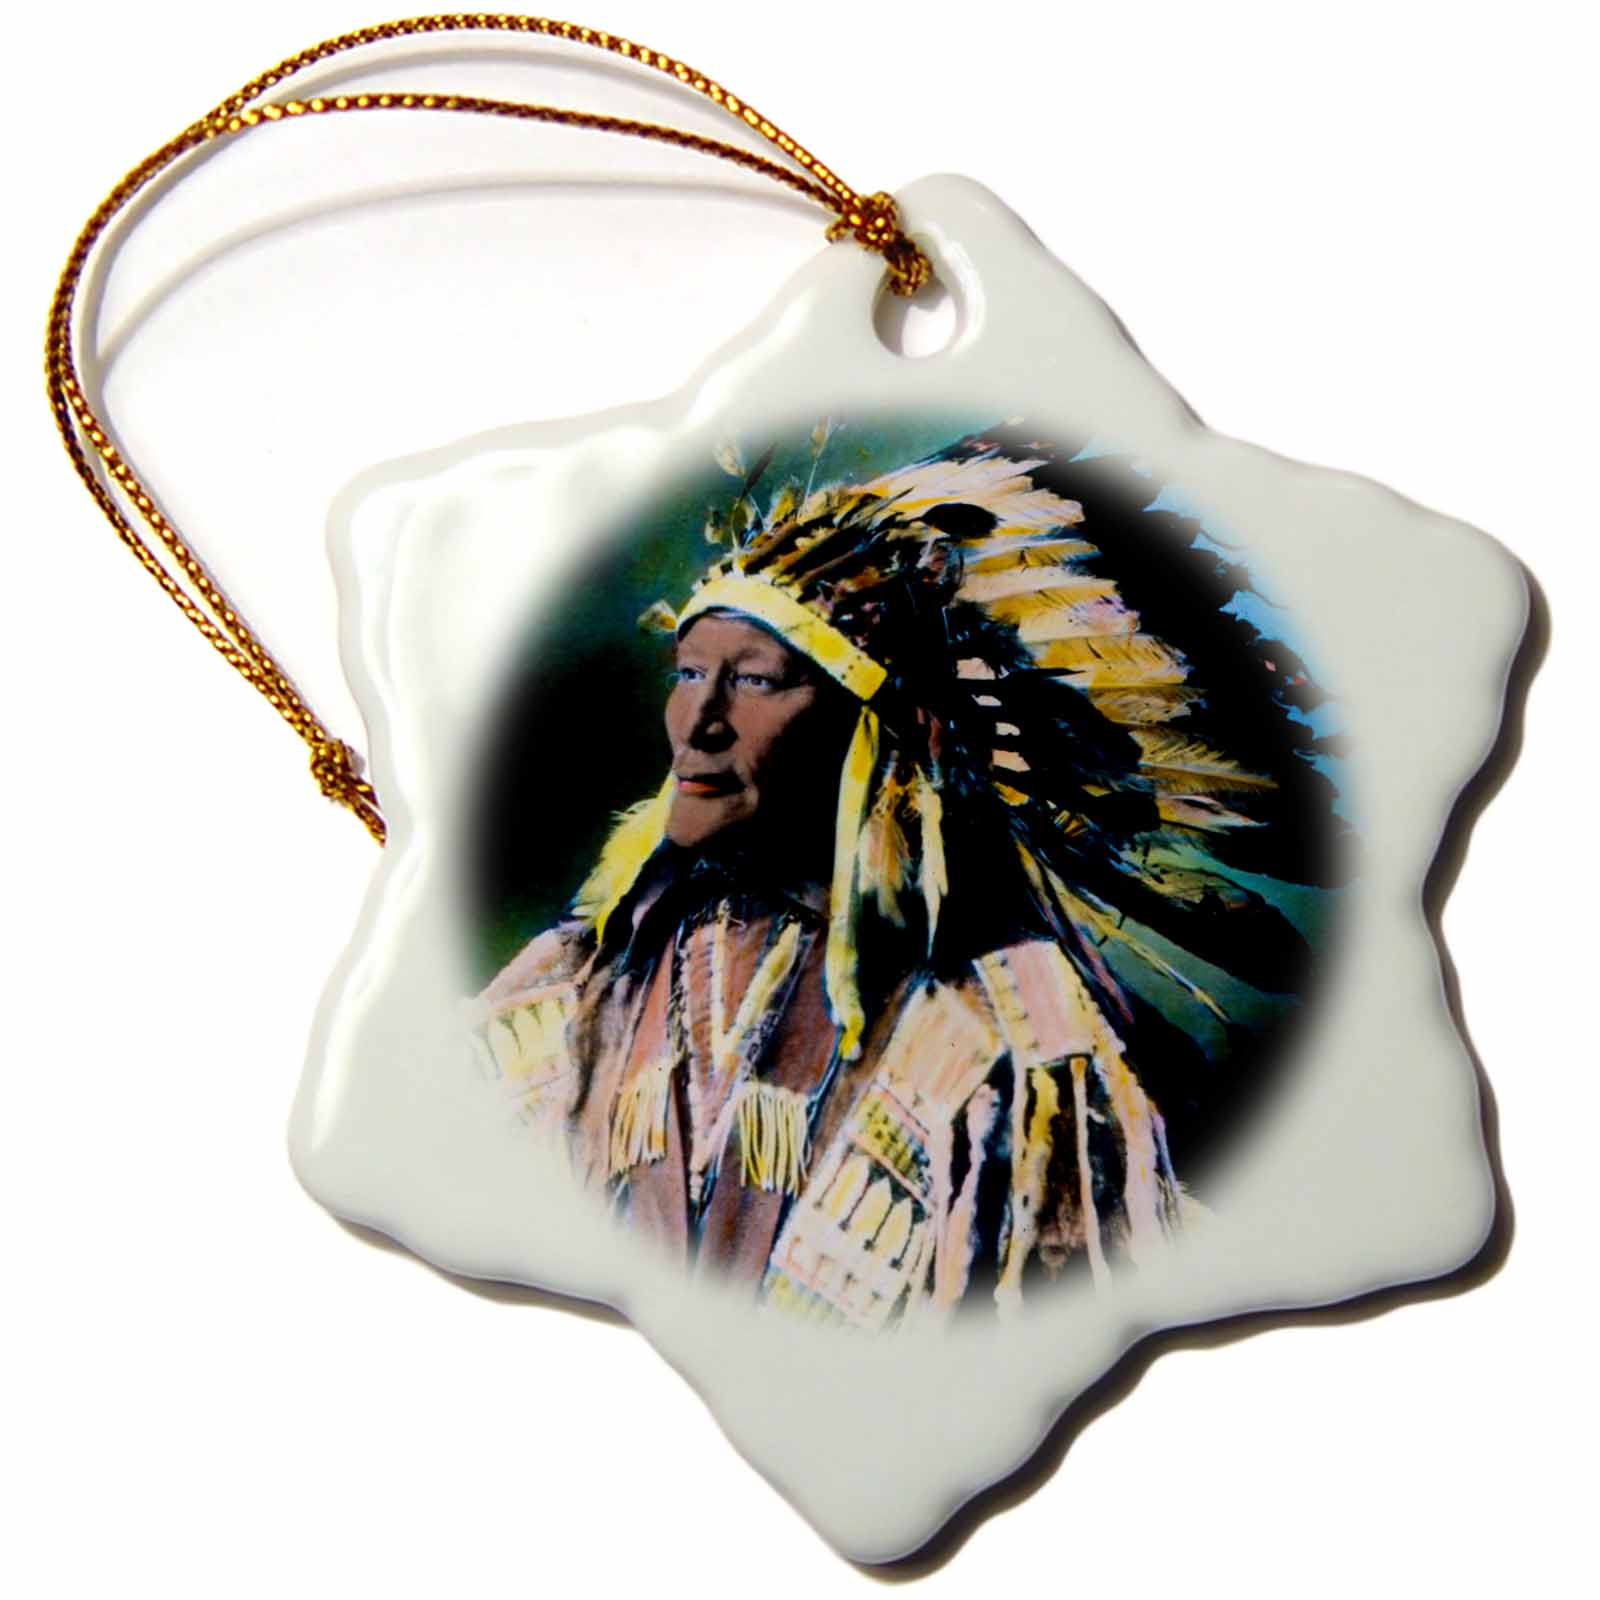 3dRose Vintage Magic Lantern Native American Sioux Chief Hand Colored - Snowflake Ornament, 3-inch